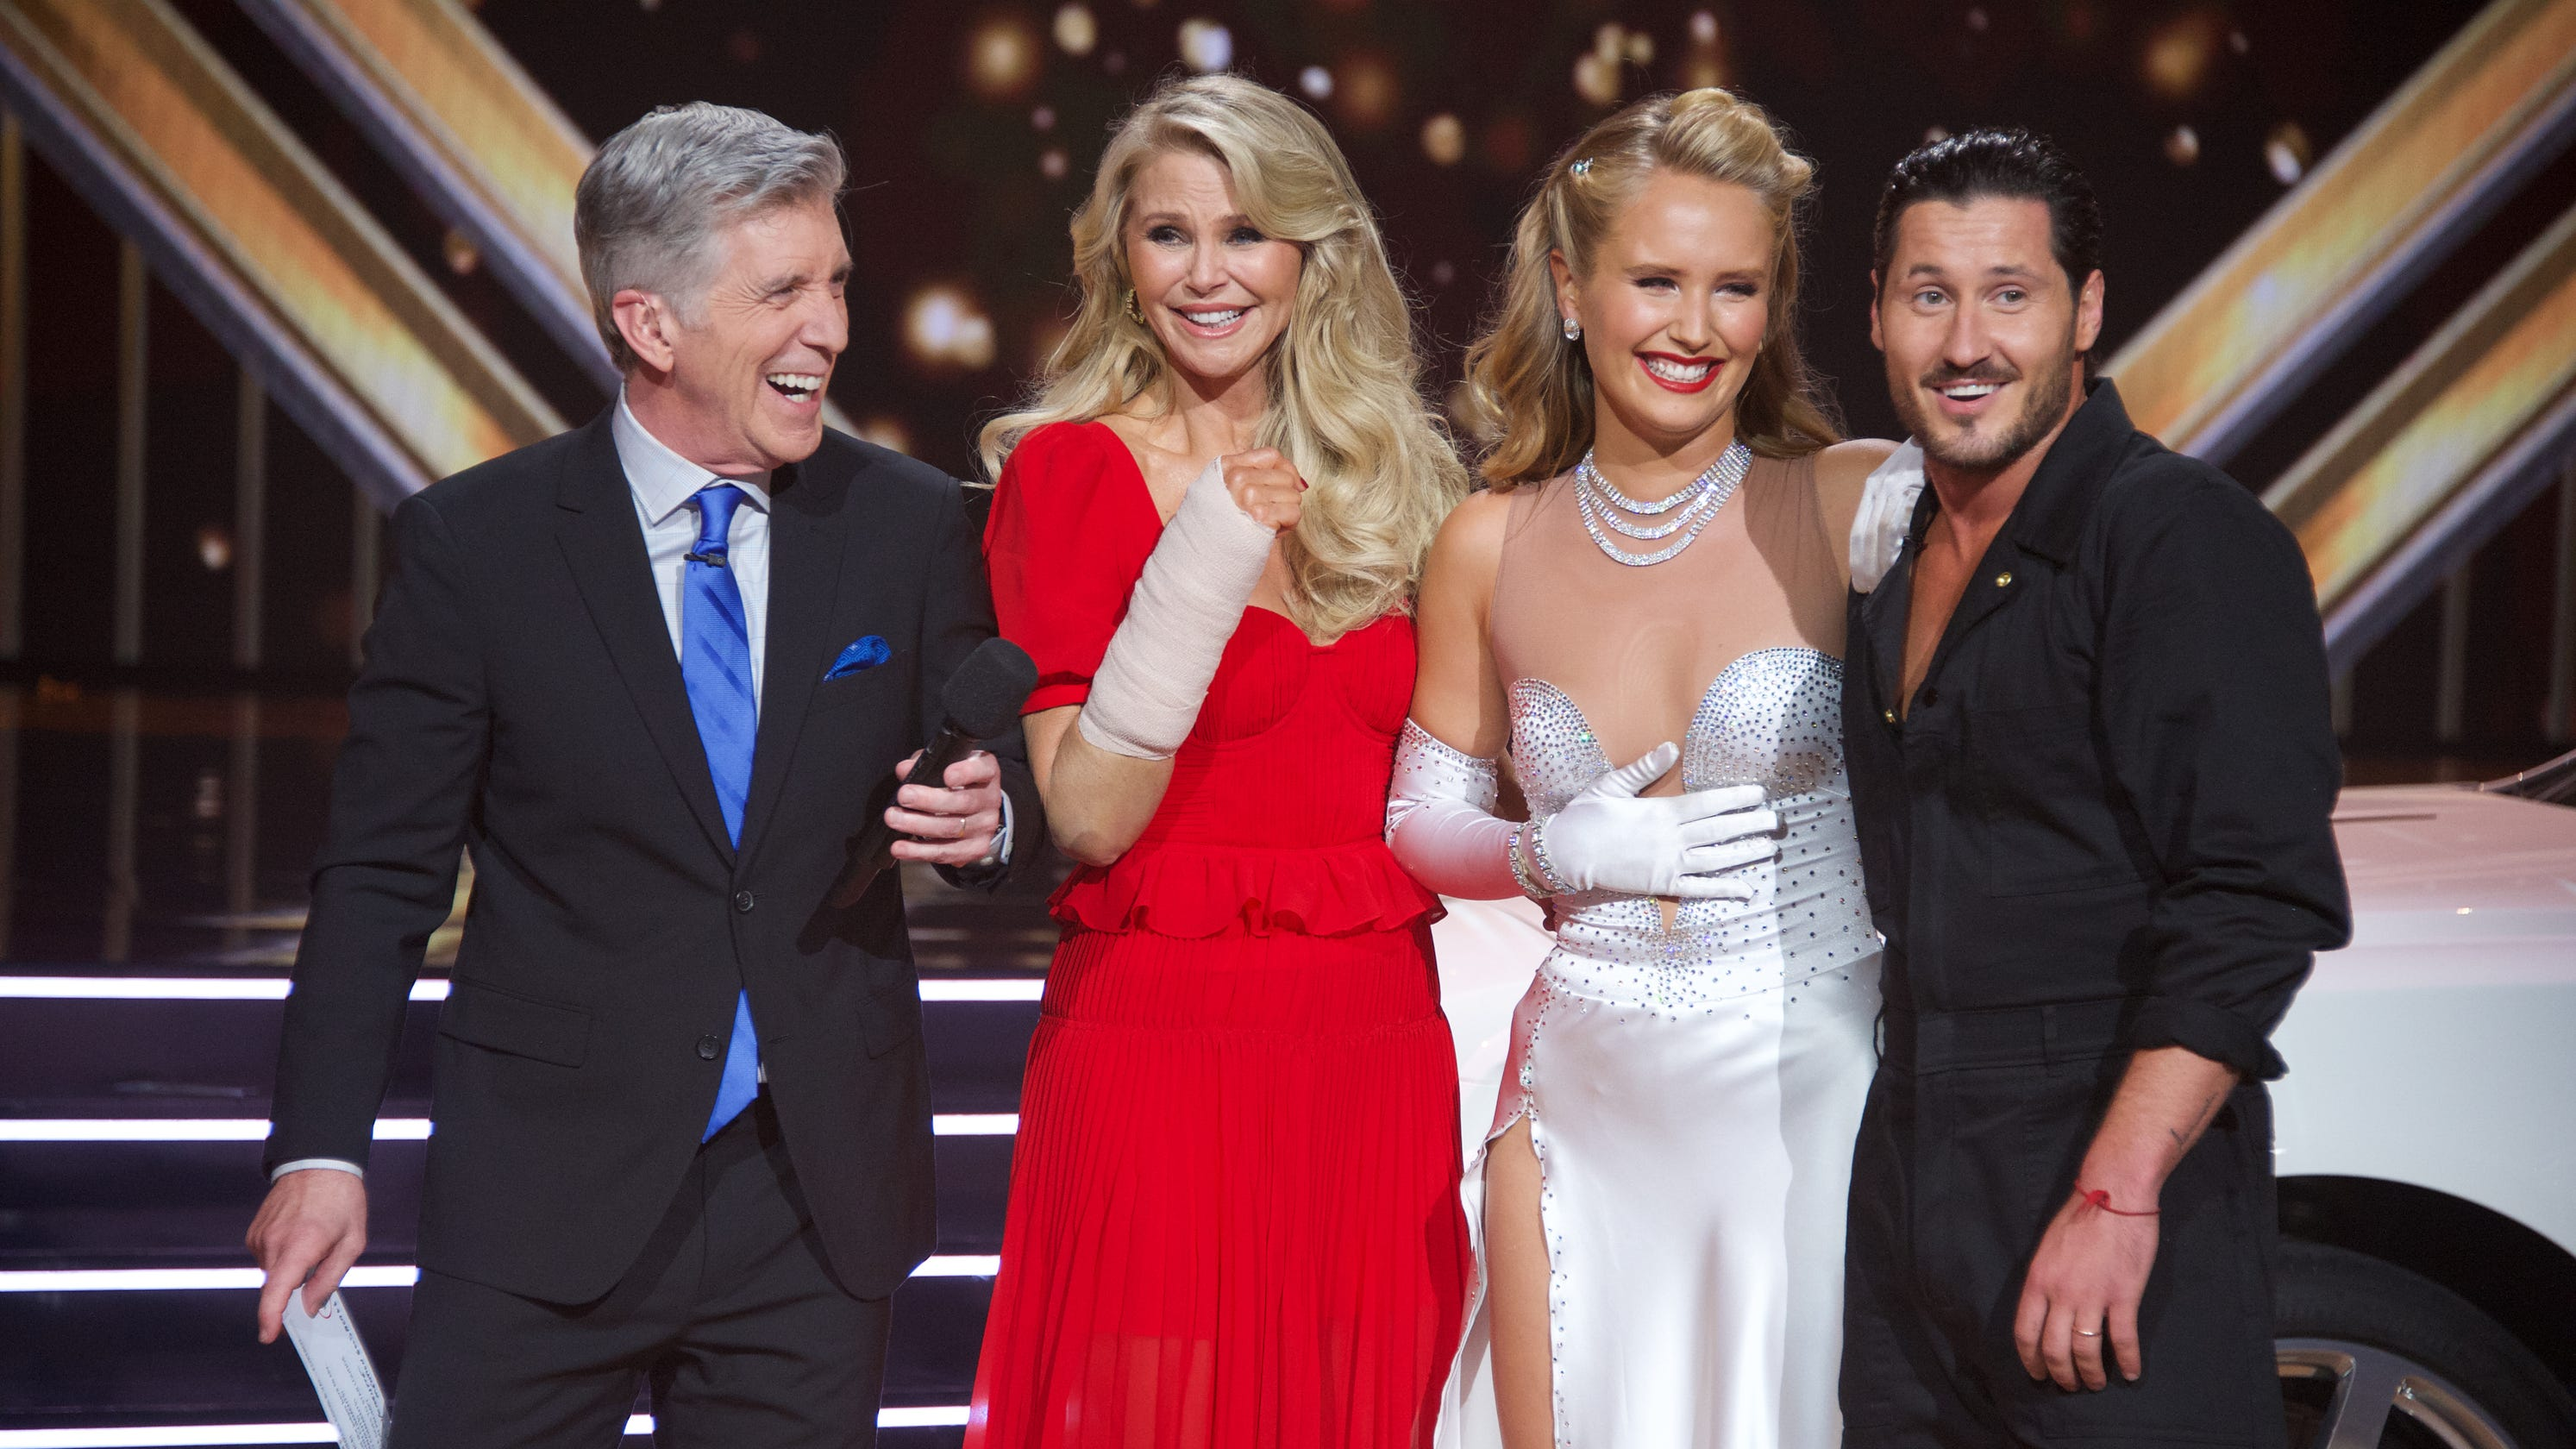 Christie Brinkley shows bruises after Wendy Williams claims she faked 'DWTS' injury